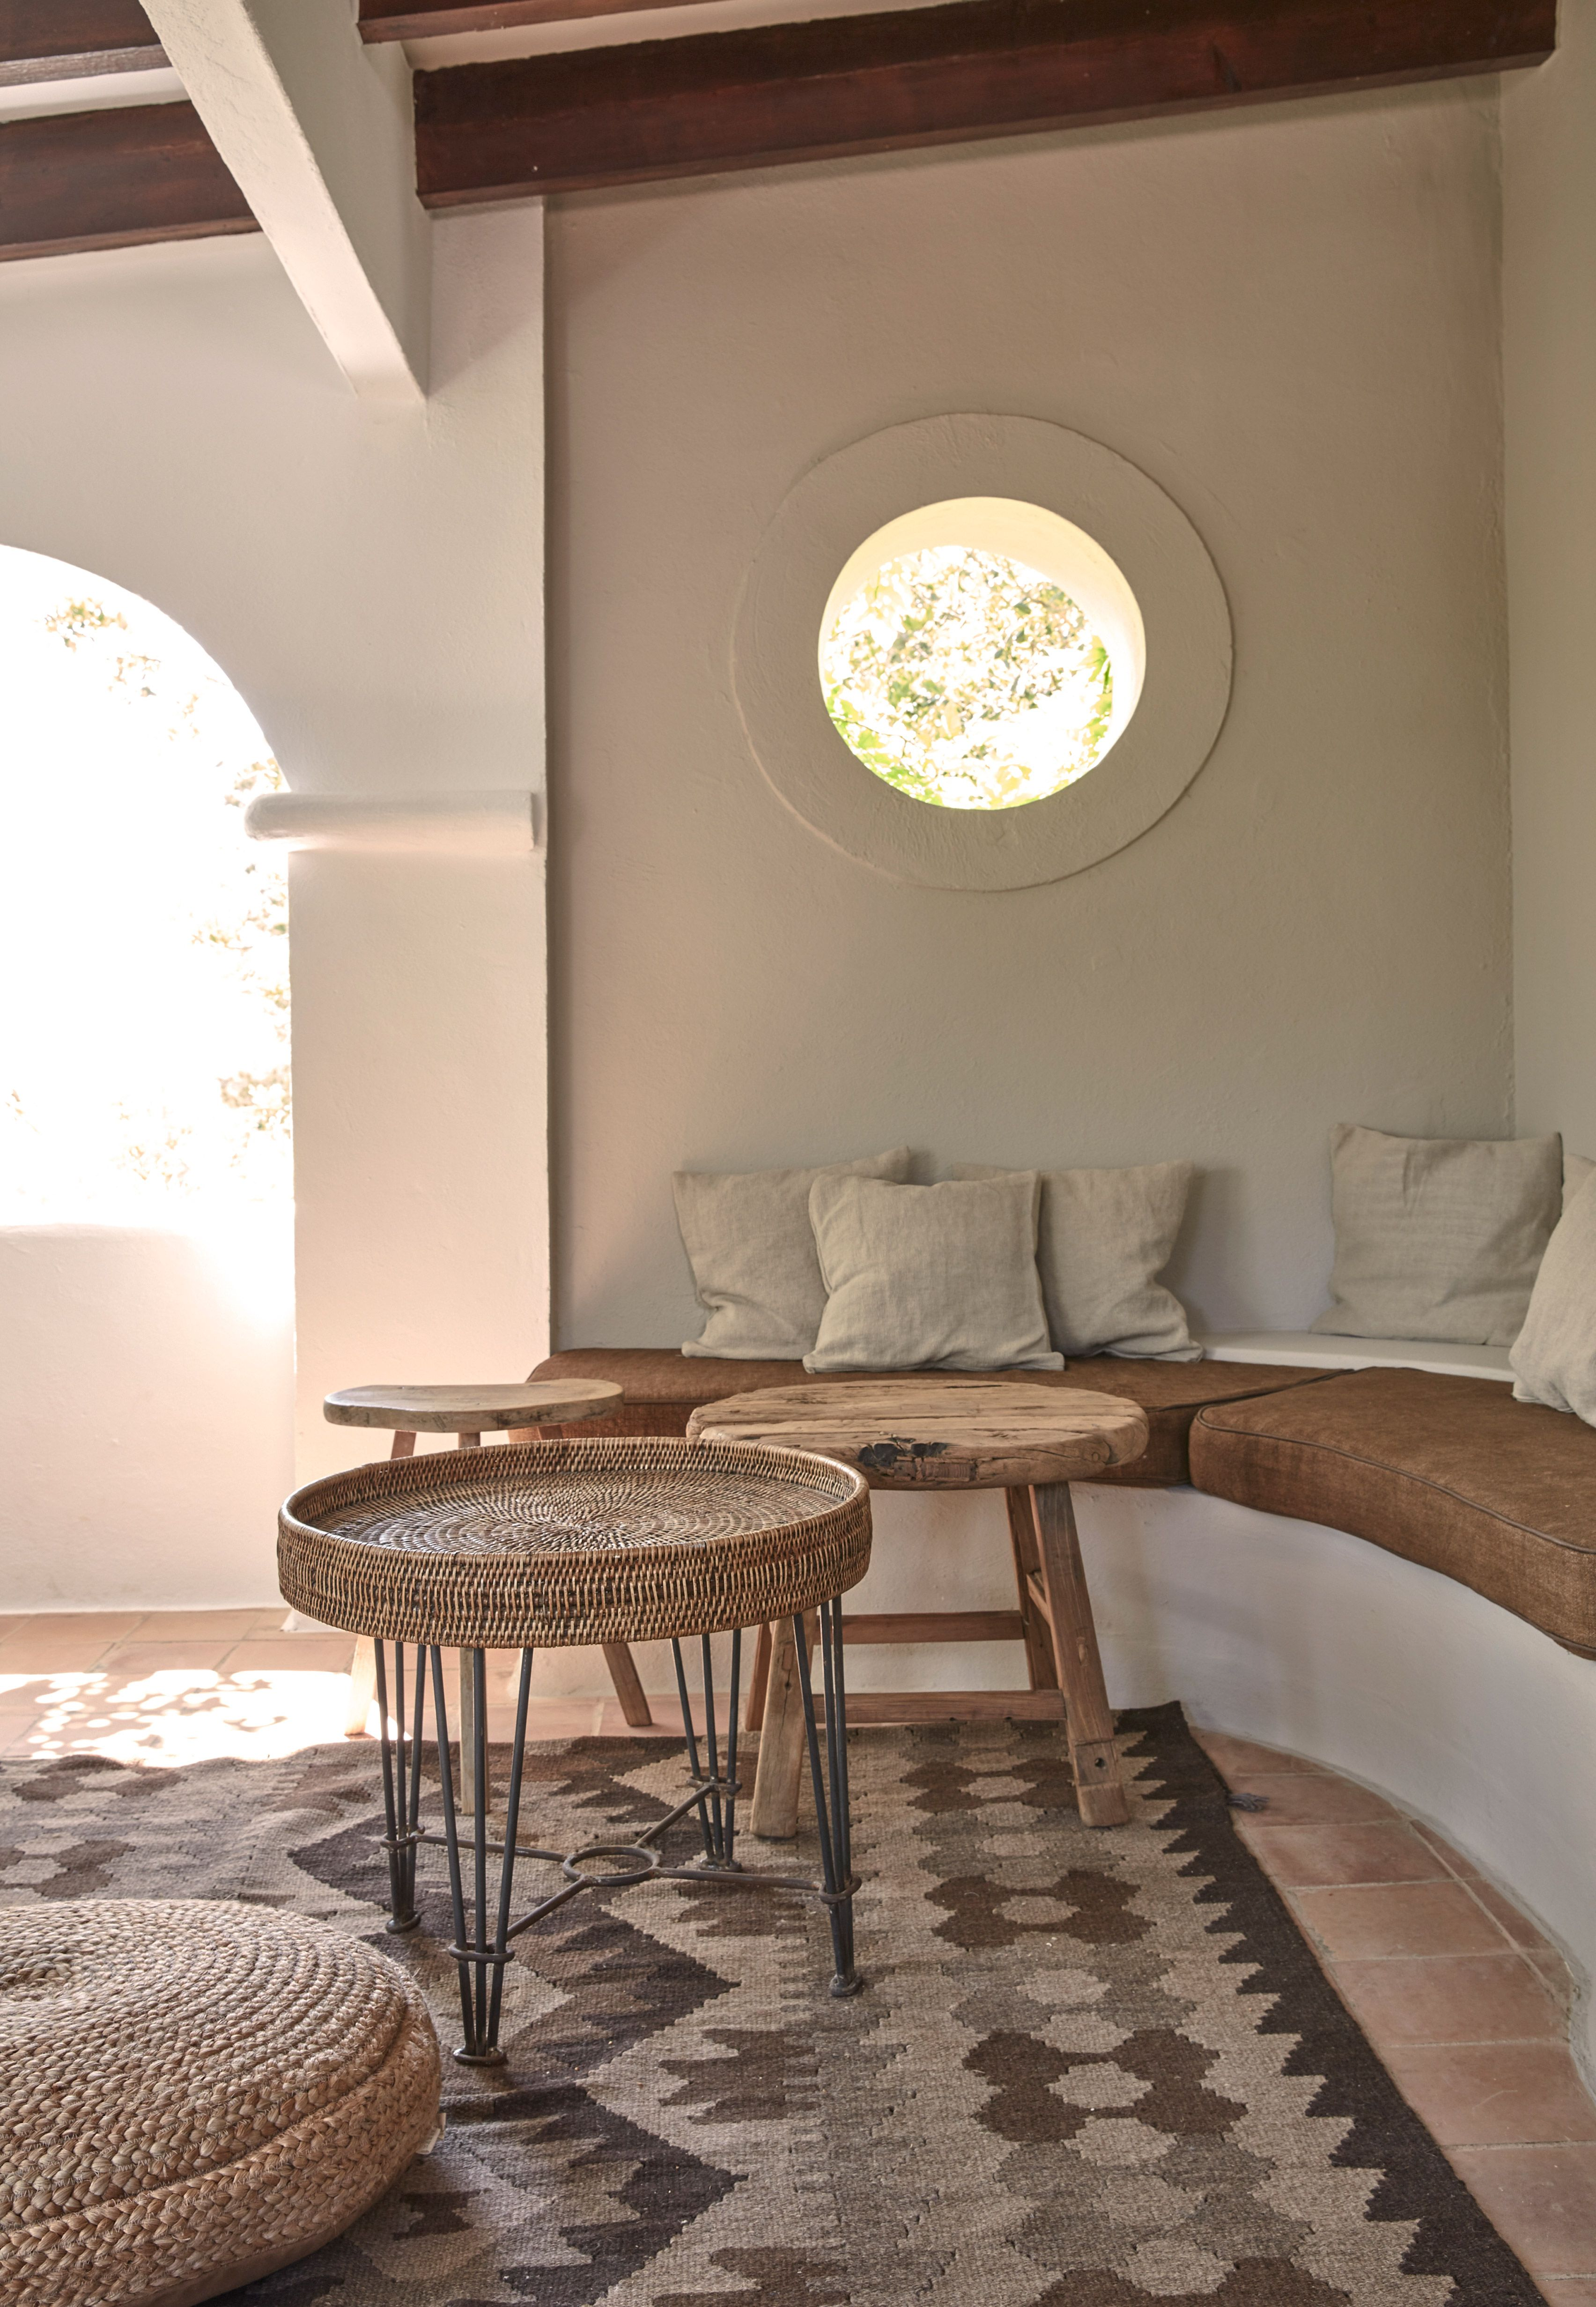 House La Granja Ibiza is a members only